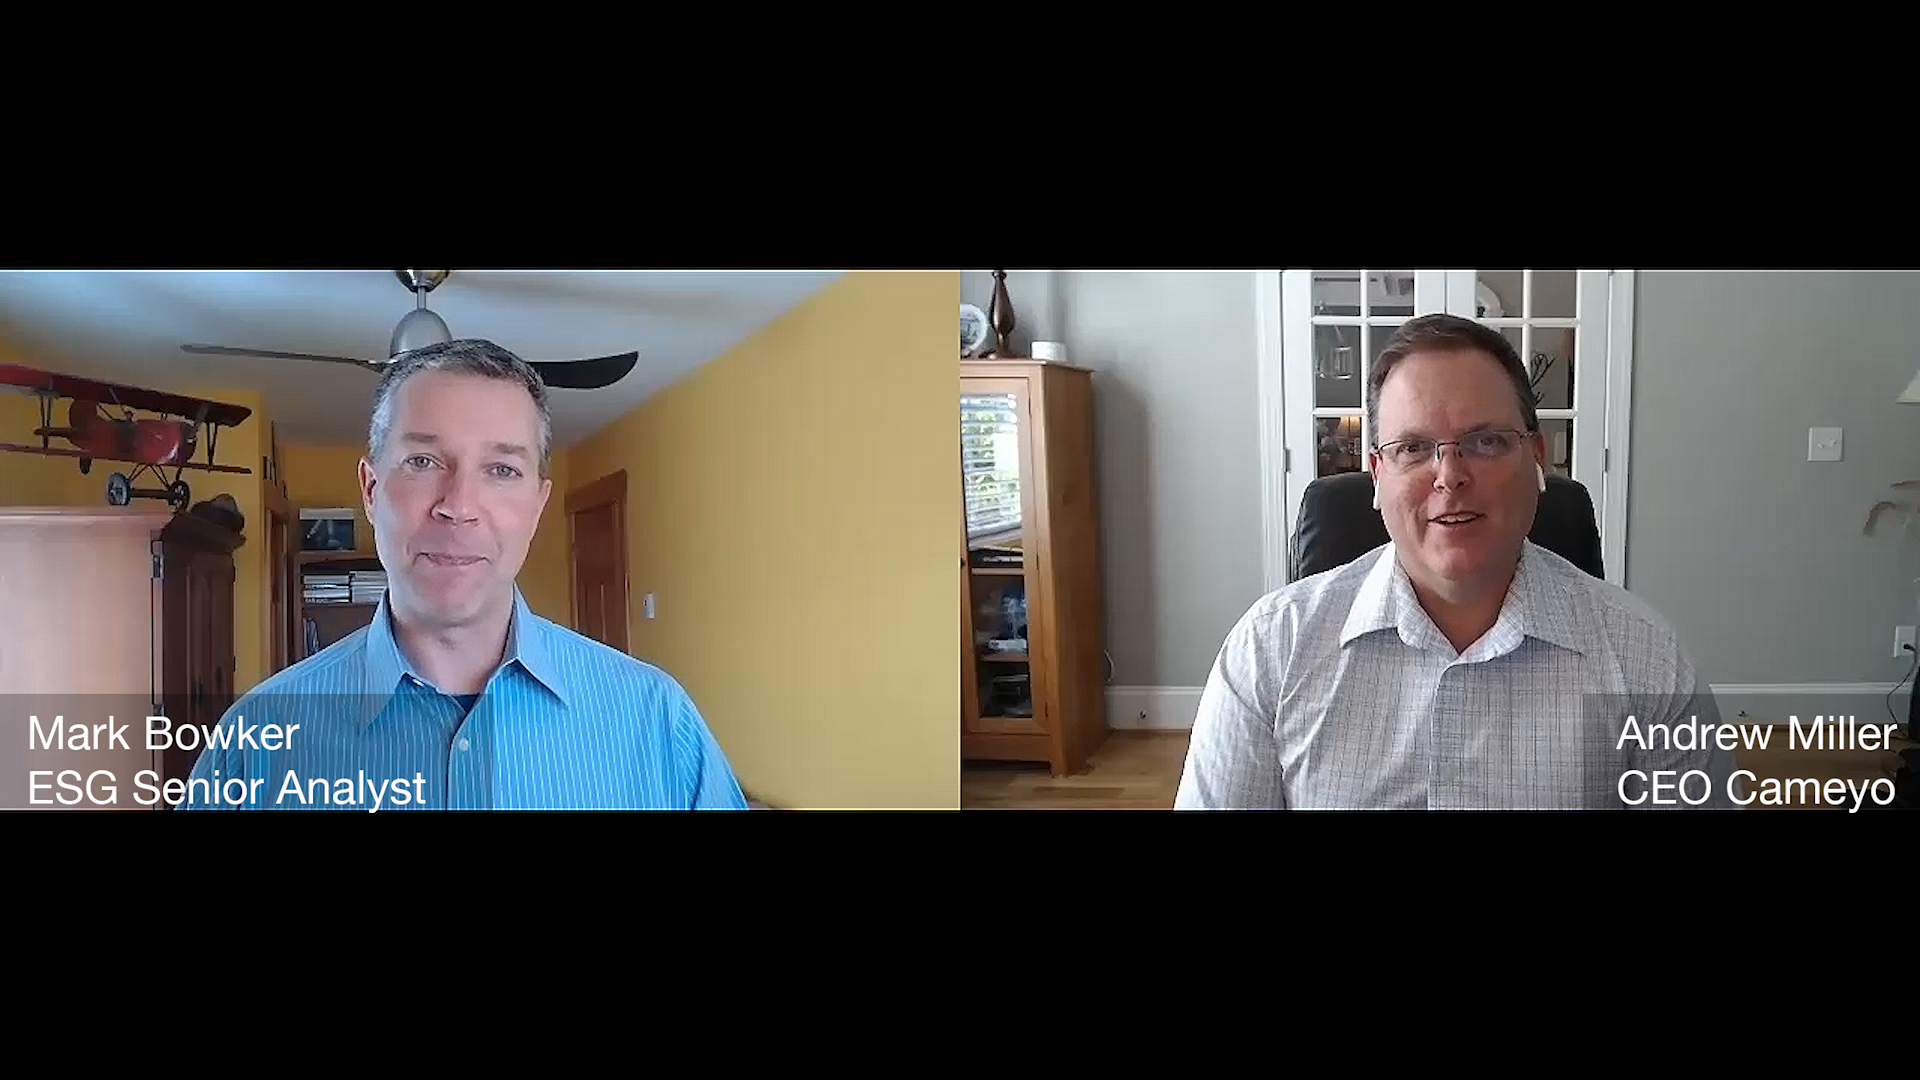 Remote Work Without VPN during the COVID-19 Pandemic? Video with Andrew, CEO at Cameyo